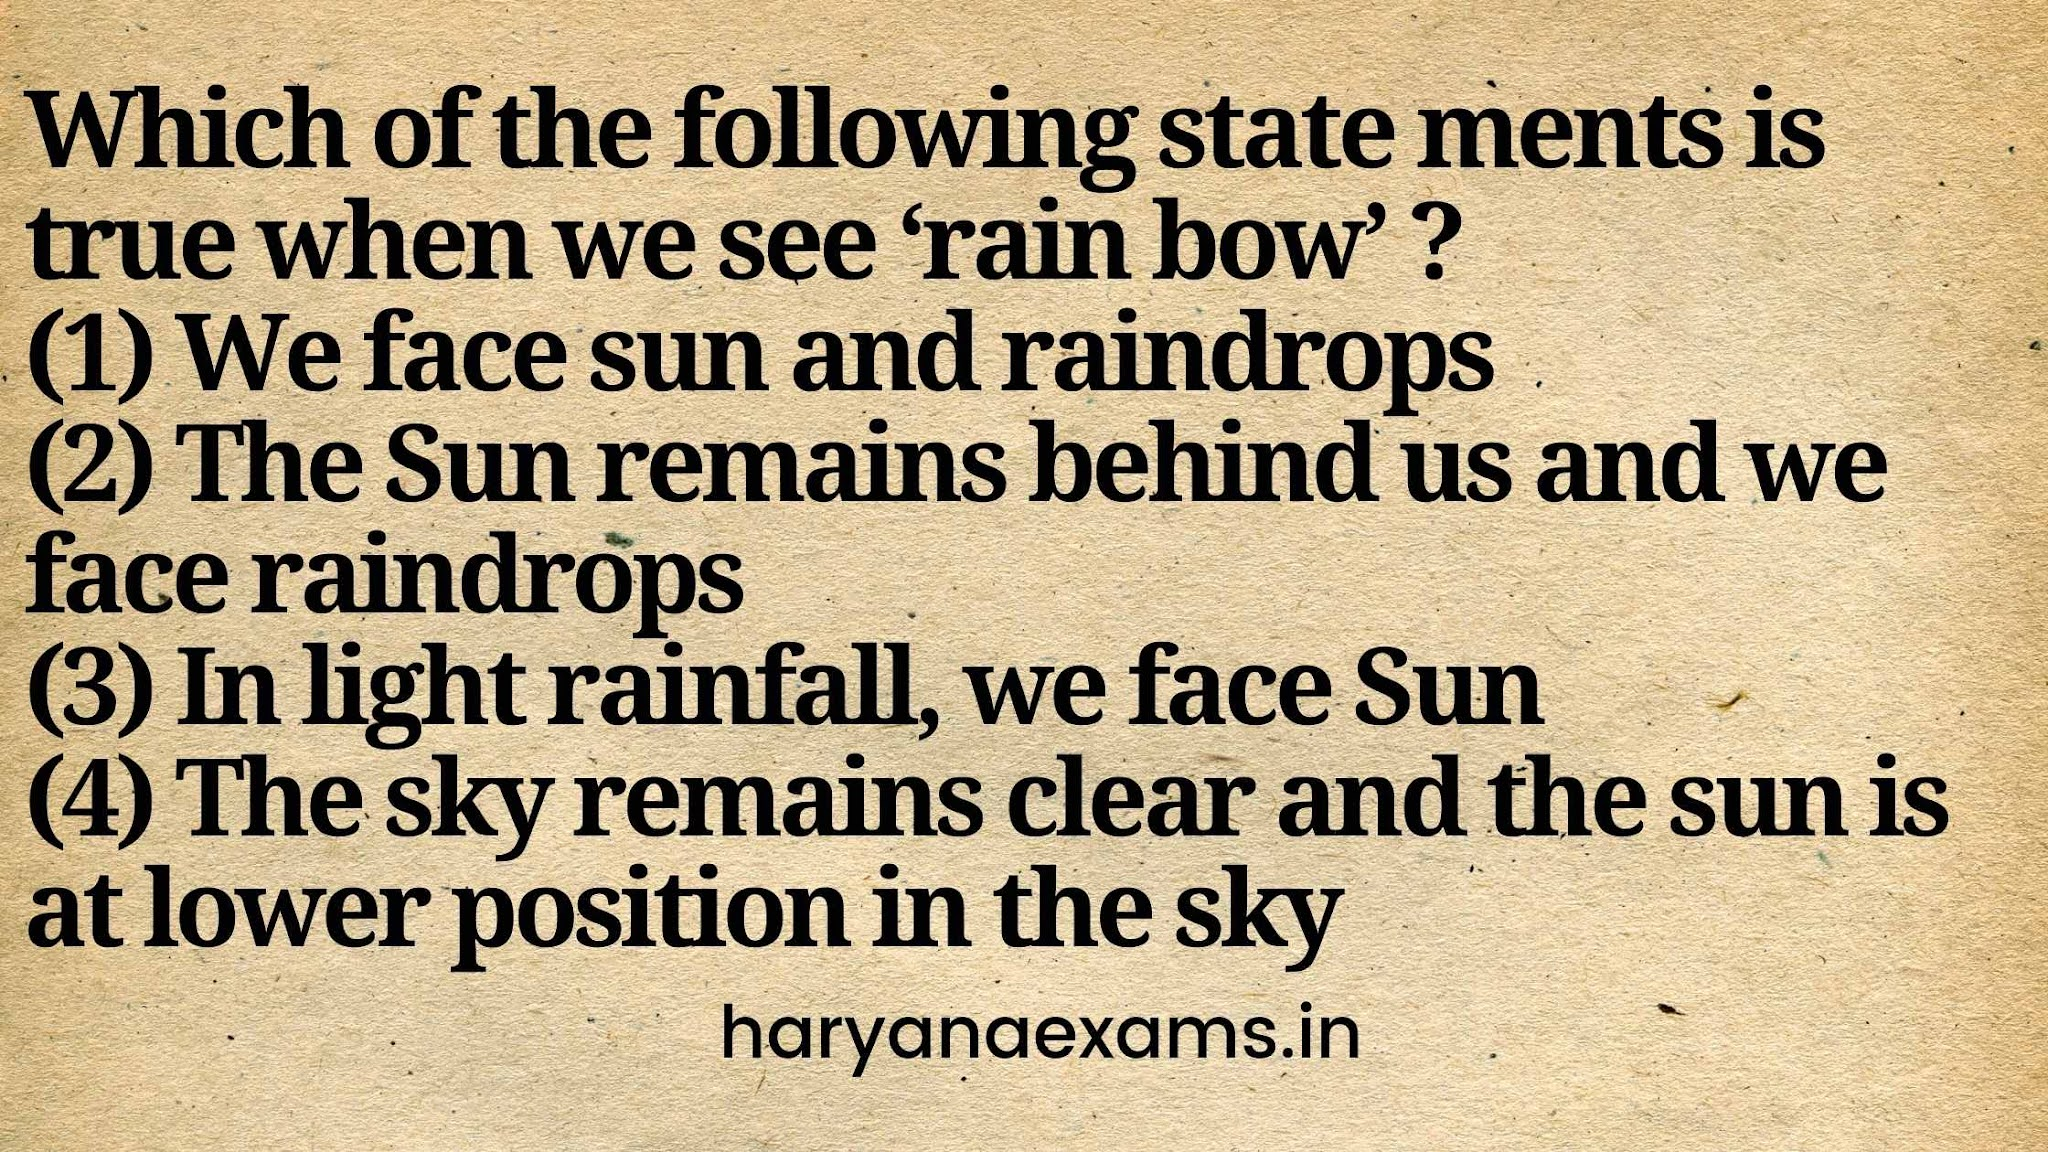 Which of the following statements is true when we see 'rainbow' ?   (1) We face sun and raindrops   (2) The Sun remains behind us and we face raindrops   (3) In light rainfall, we face Sun   (4) The sky remains clear and the sun is at lower position in the sky